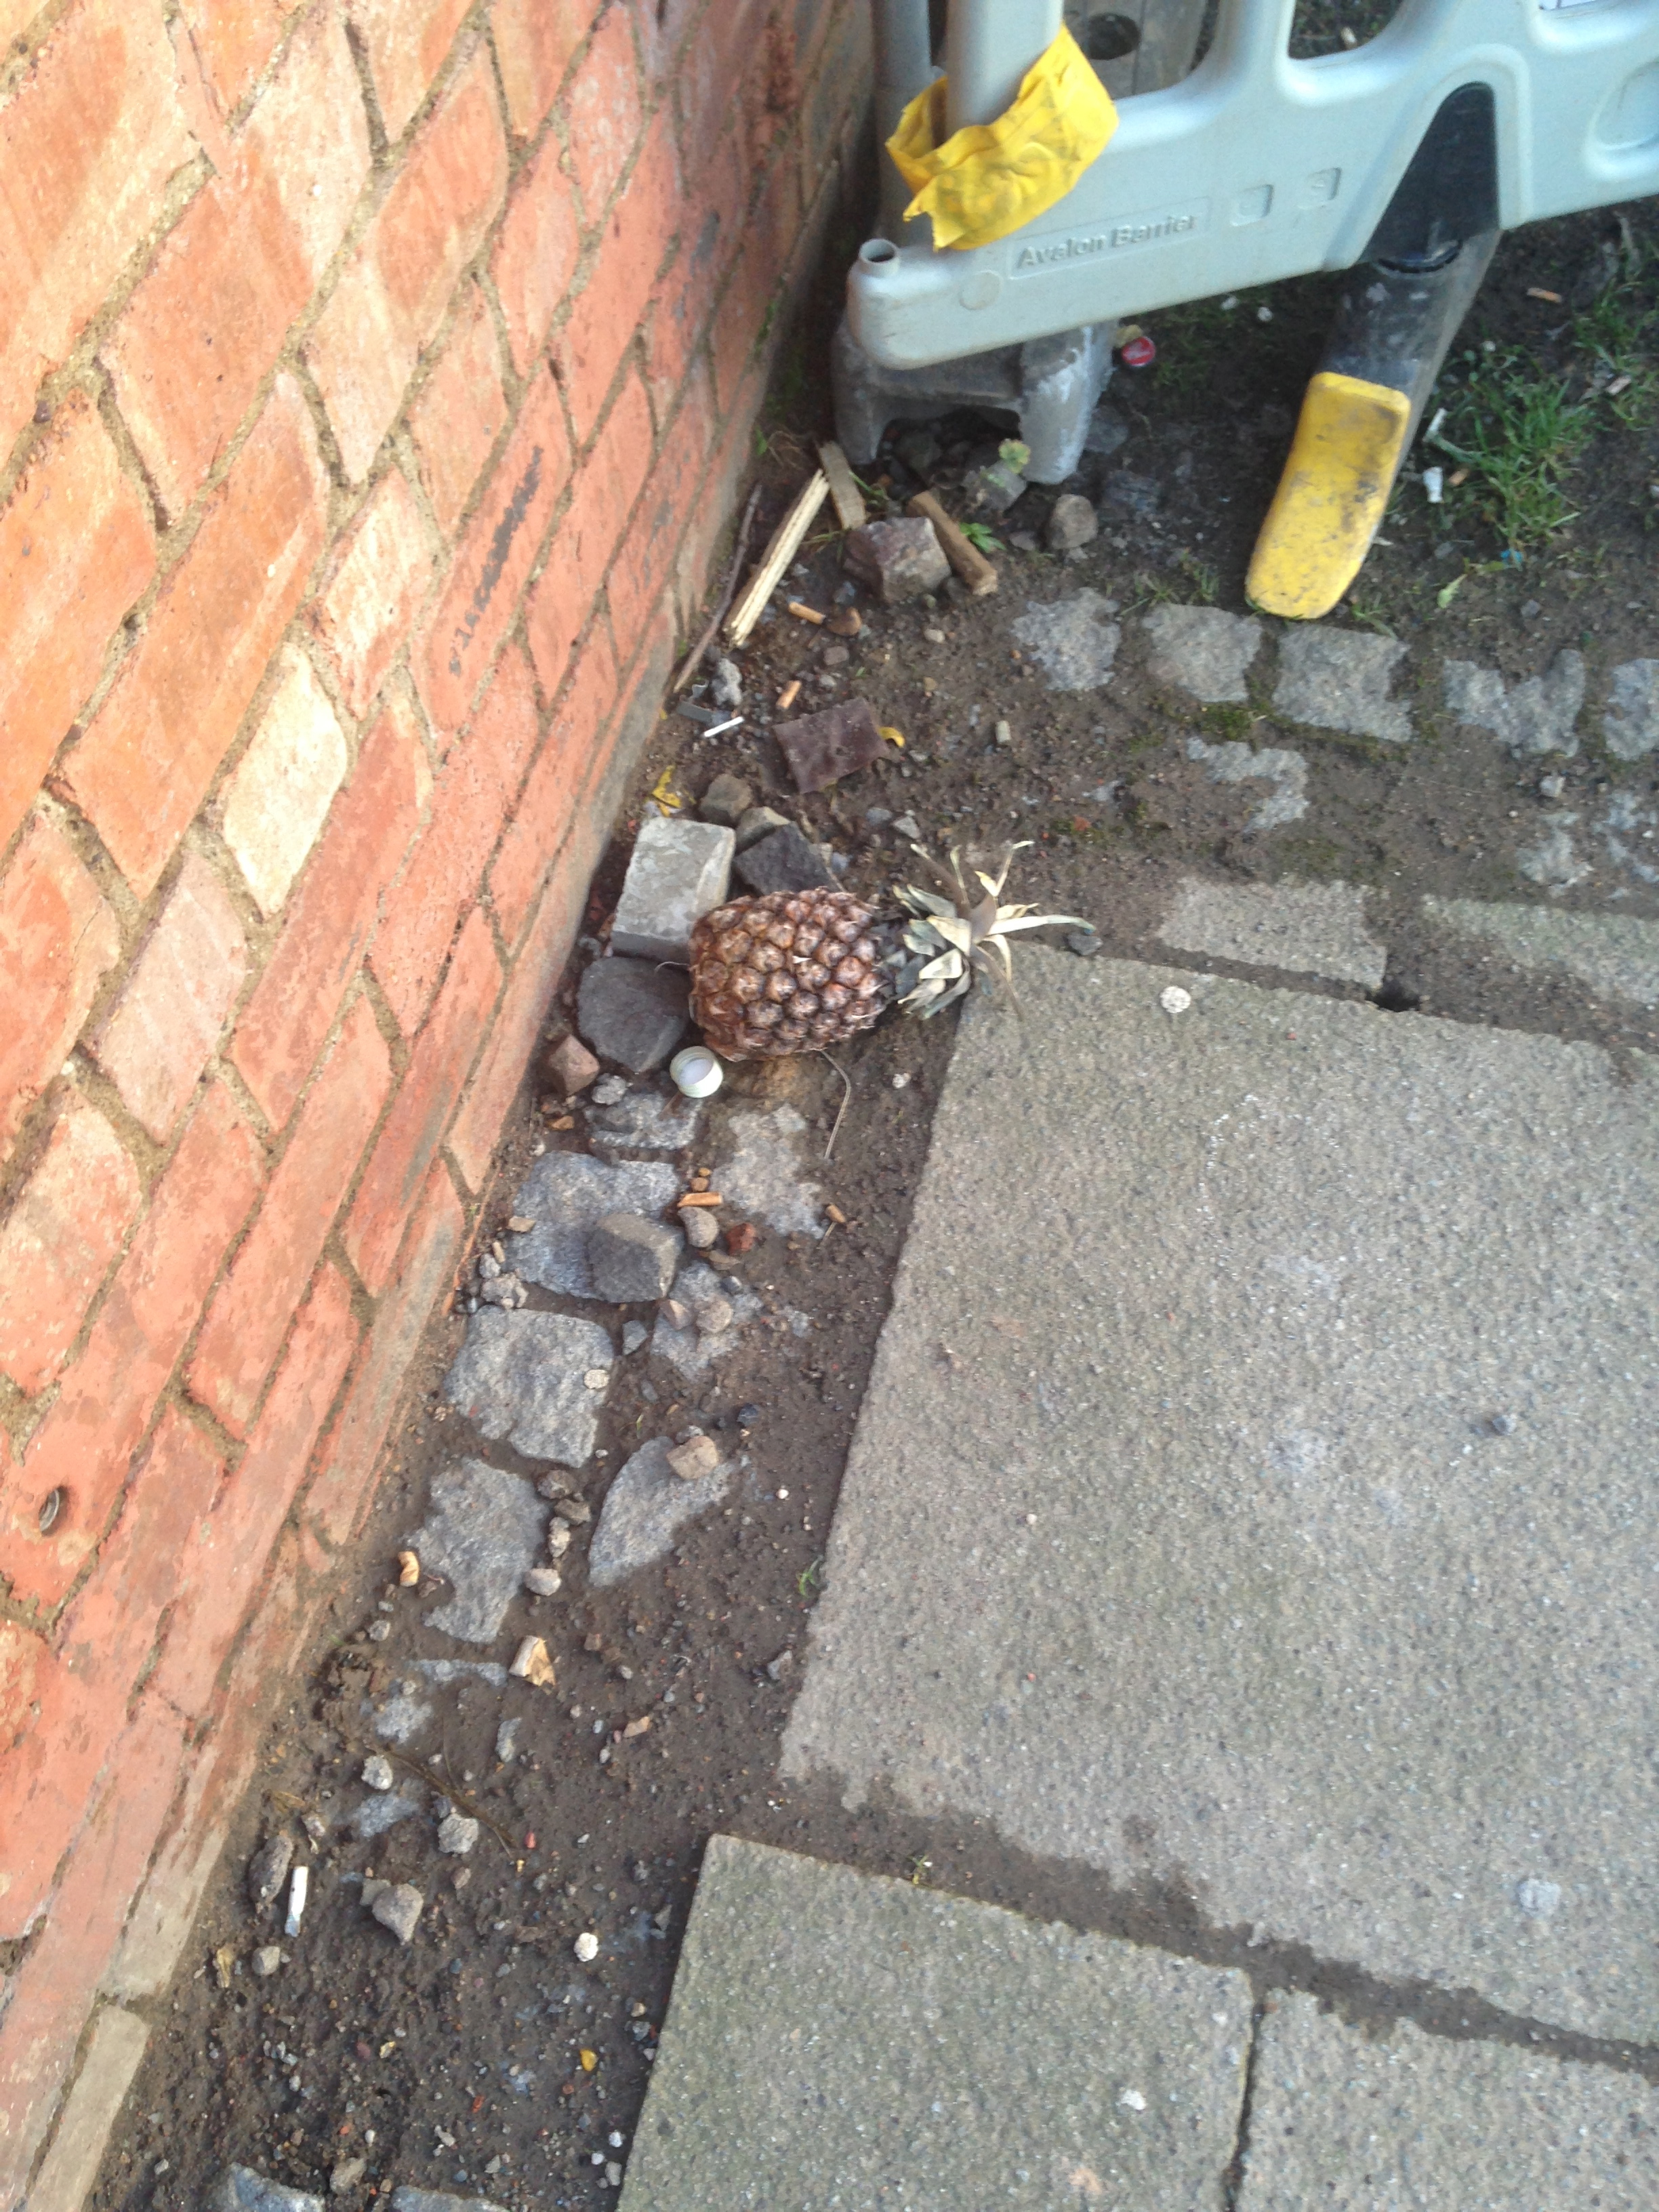 Having stared at this for a solid 15 seconds, I can confirm it is a pineapple.